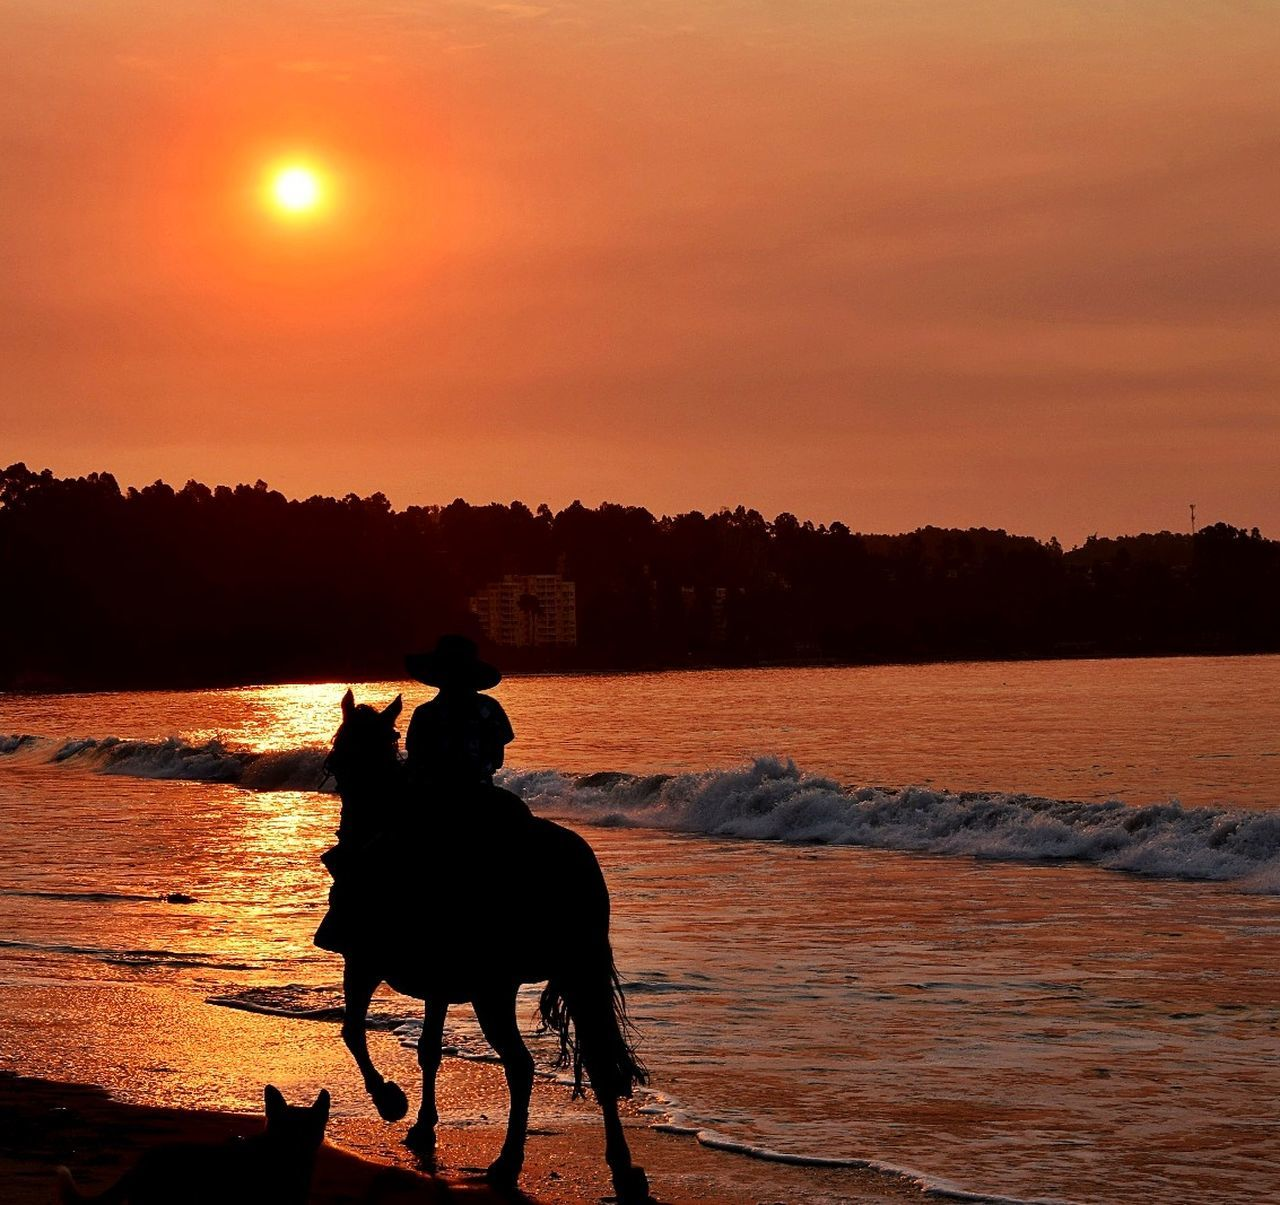 Sunset Horse Silhouette Nature Outdoors Beach Beachphotography Beachlovers Beach Walk Sunsets Sunset_captures Sunsetlover Sunset Silhouette Landscape Landscape_Collection Landscape_photography First Eyeem Photo